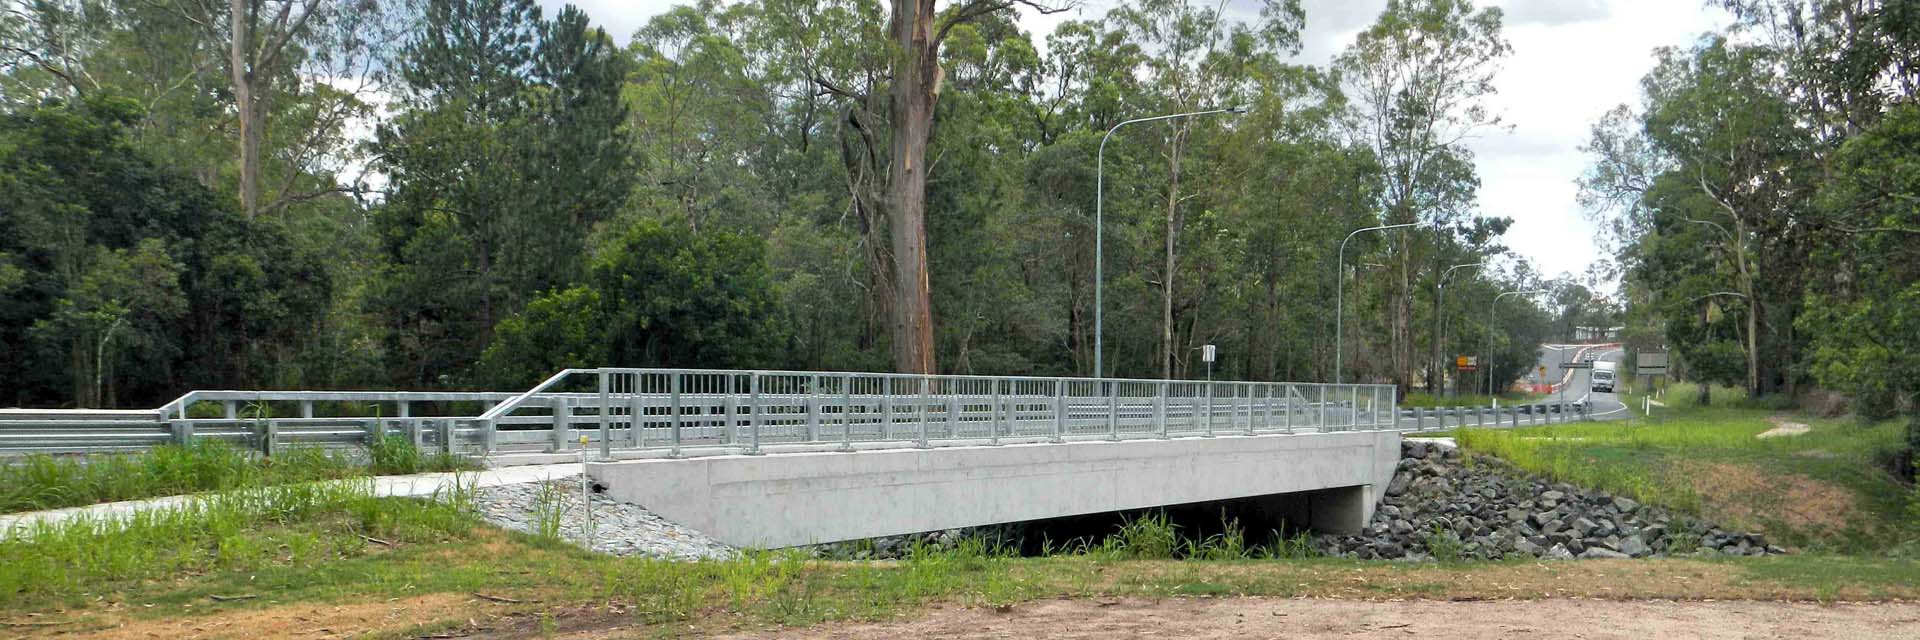 Steel Traffic barrier & Safety Barrier with pedestrian balustrade – Edwards Bridge, Greenbank